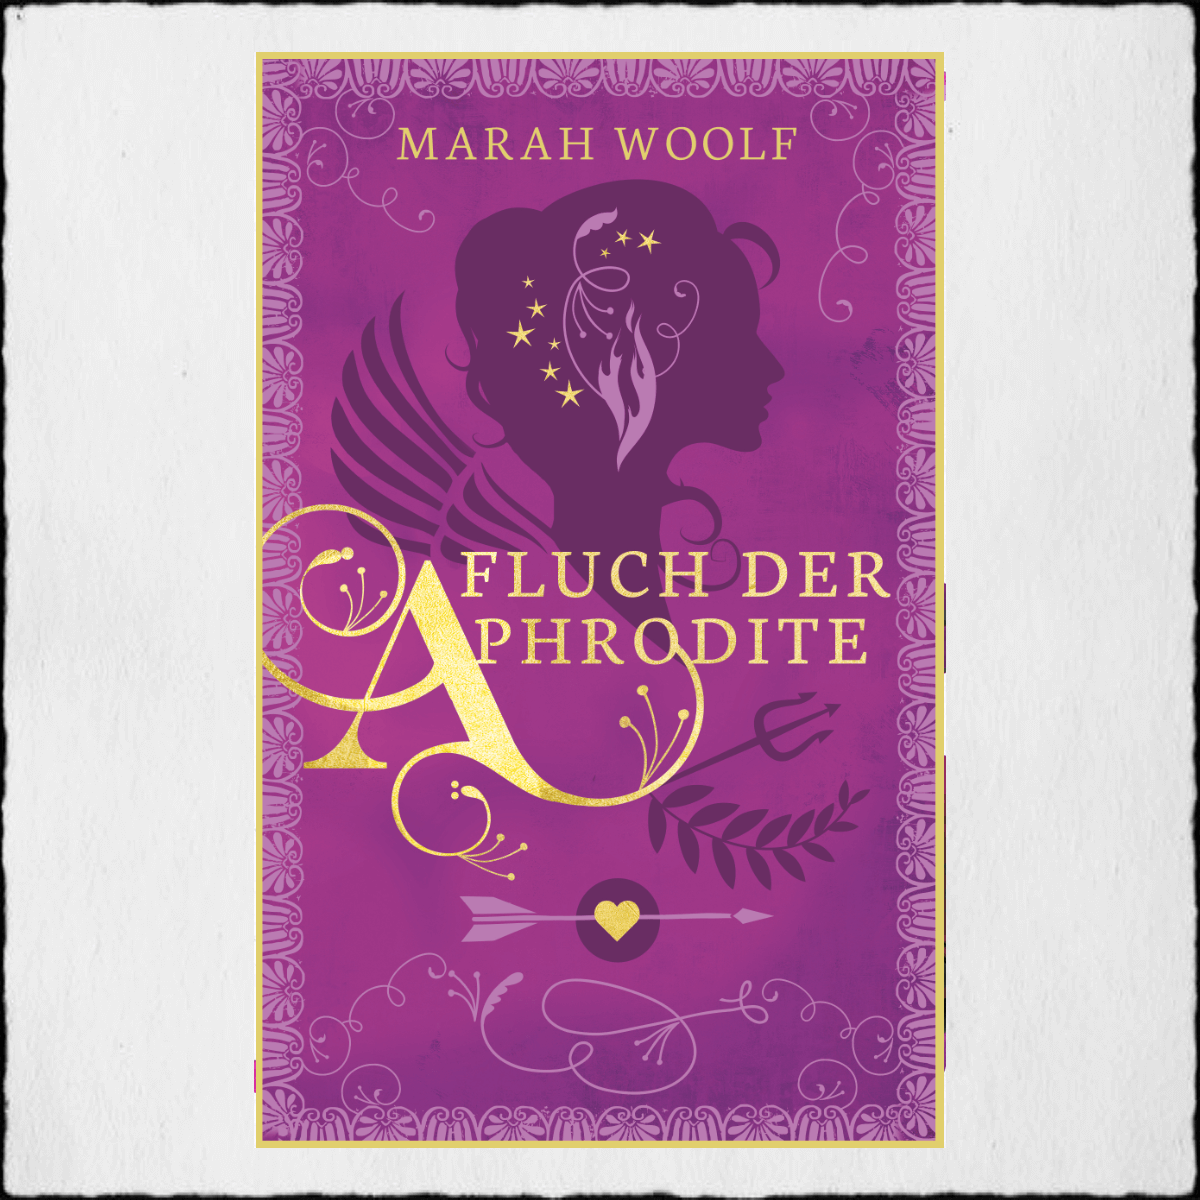 "Marah Woolf ""Fluch der Aphrodite"" © 2020 Marah Woolf in Selbstpublikation"